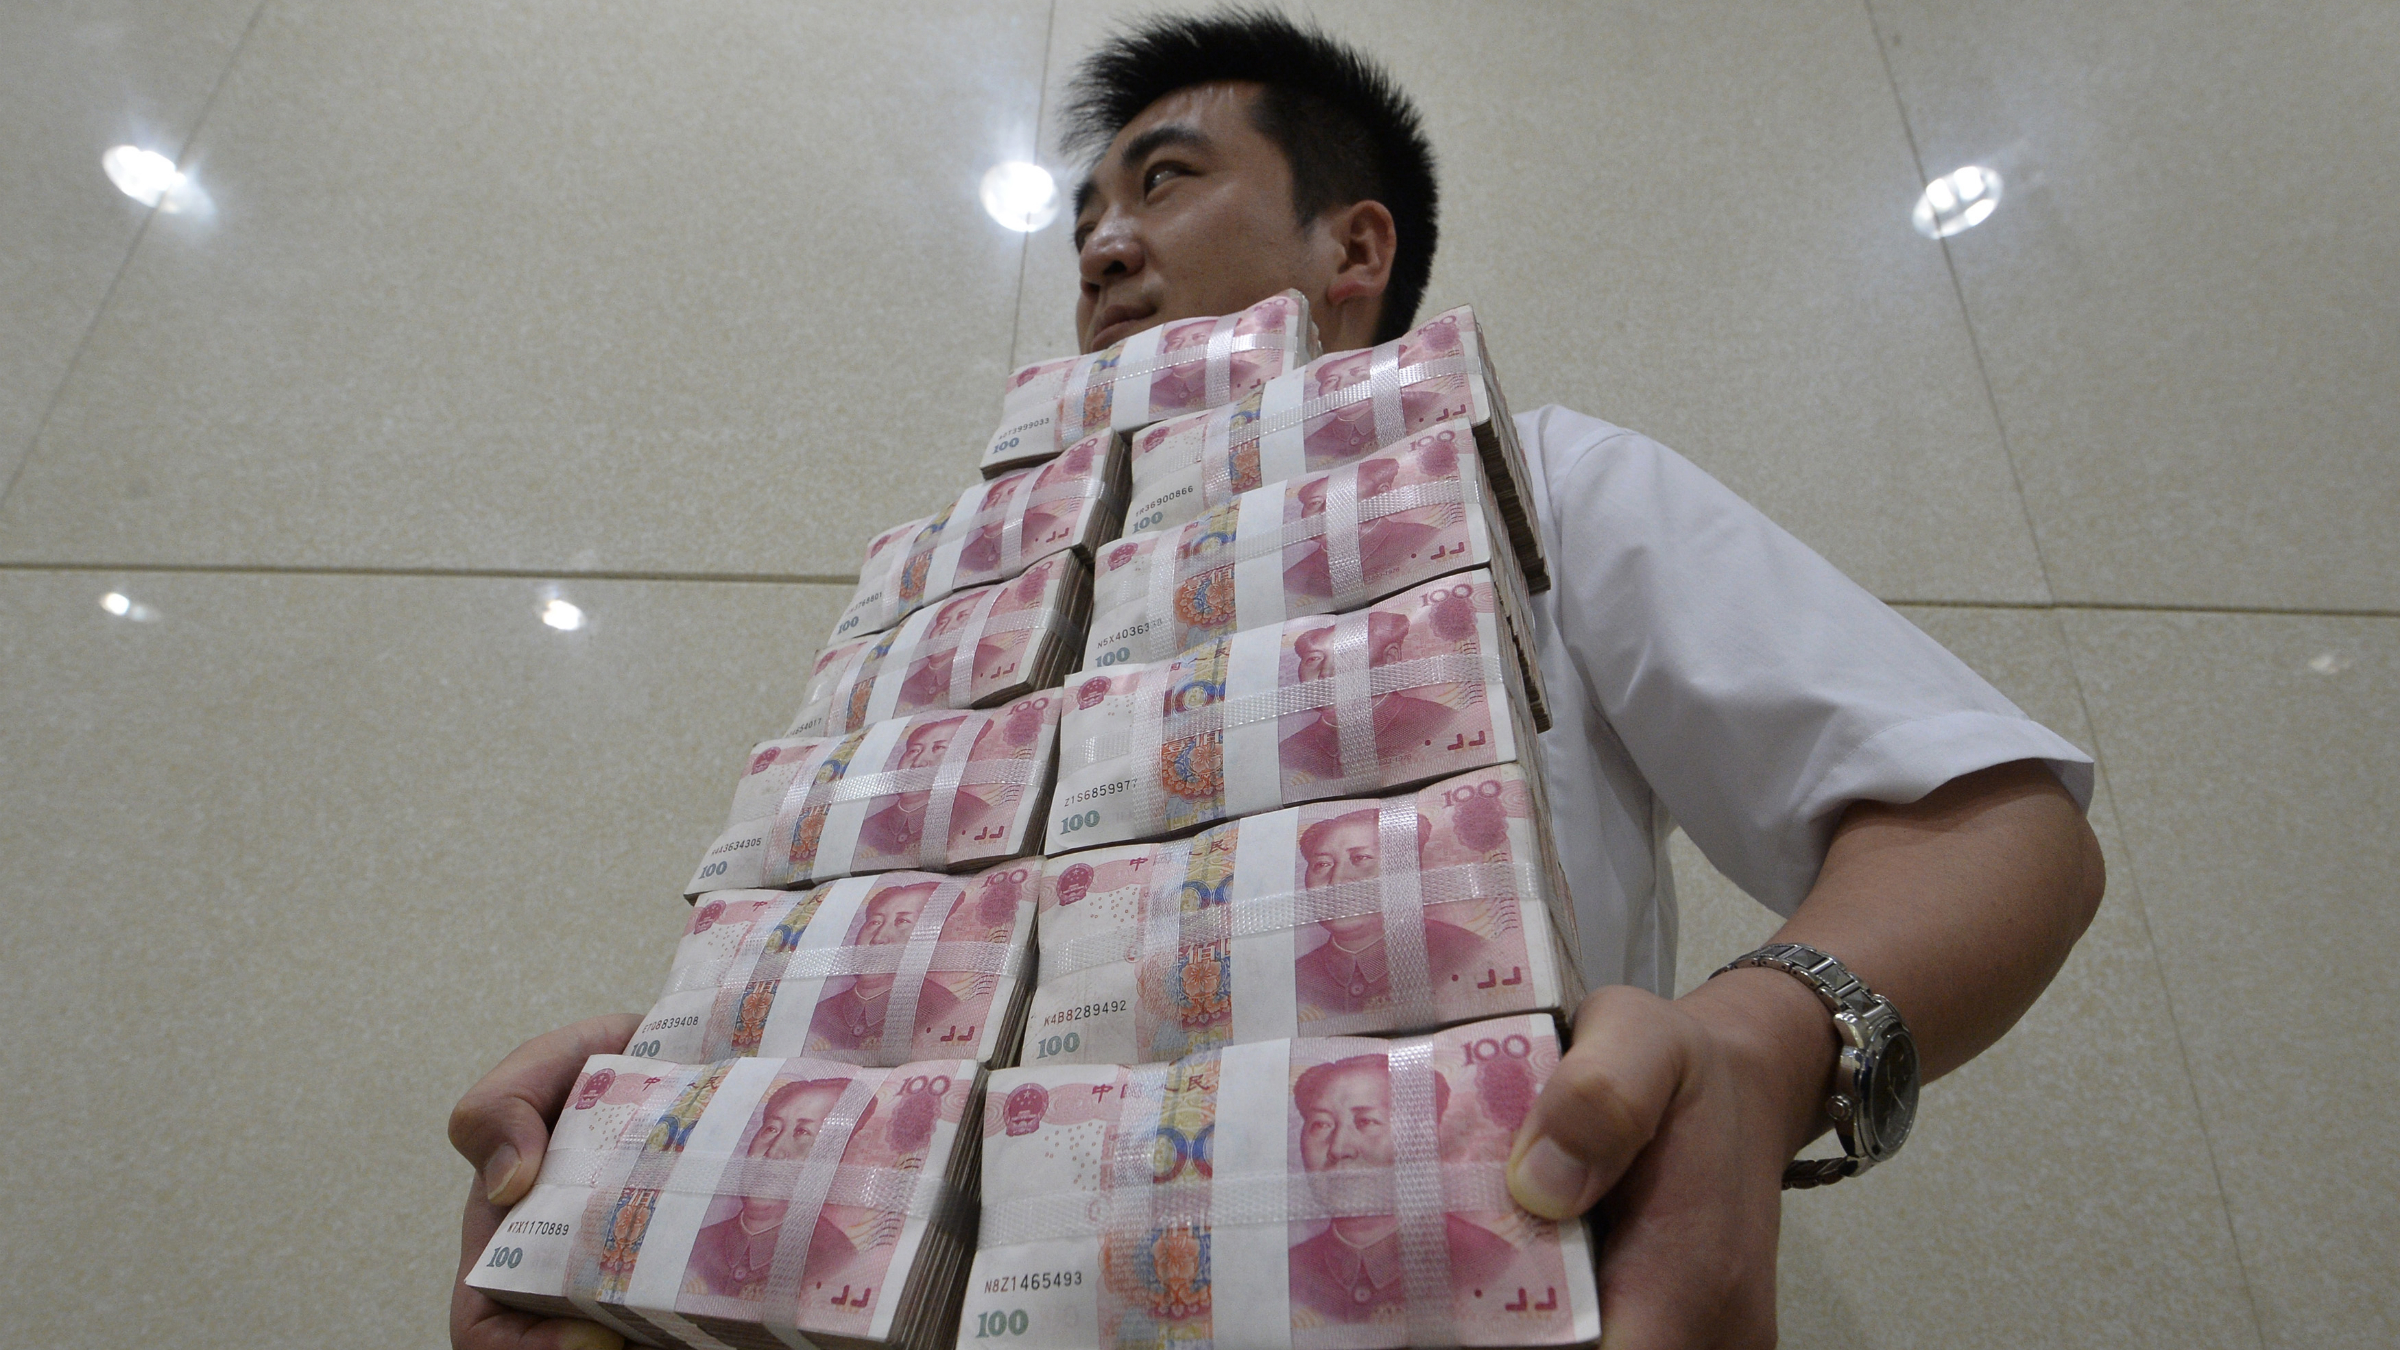 DATE IMPORTED:July 8, 2013An employee carries bundles of 100 yuan Chinese bank notes to store after counting at a bank in Taiyuan, Shanxi province July 4, 2013. Chinese authorities allowed short-term borrowing costs to spike to record levels on June 20, sending a blunt but effective message to banks that it was determined to bring risky credit growth under control. The crackdown, however, has only increased China Inc's reliance on shadow banking and its various components, underscoring the system's importance as China's rigid financial industry maneuvers through an economic slowdown. Picture taken July 4, 2013. REUTERS/Jon Woo